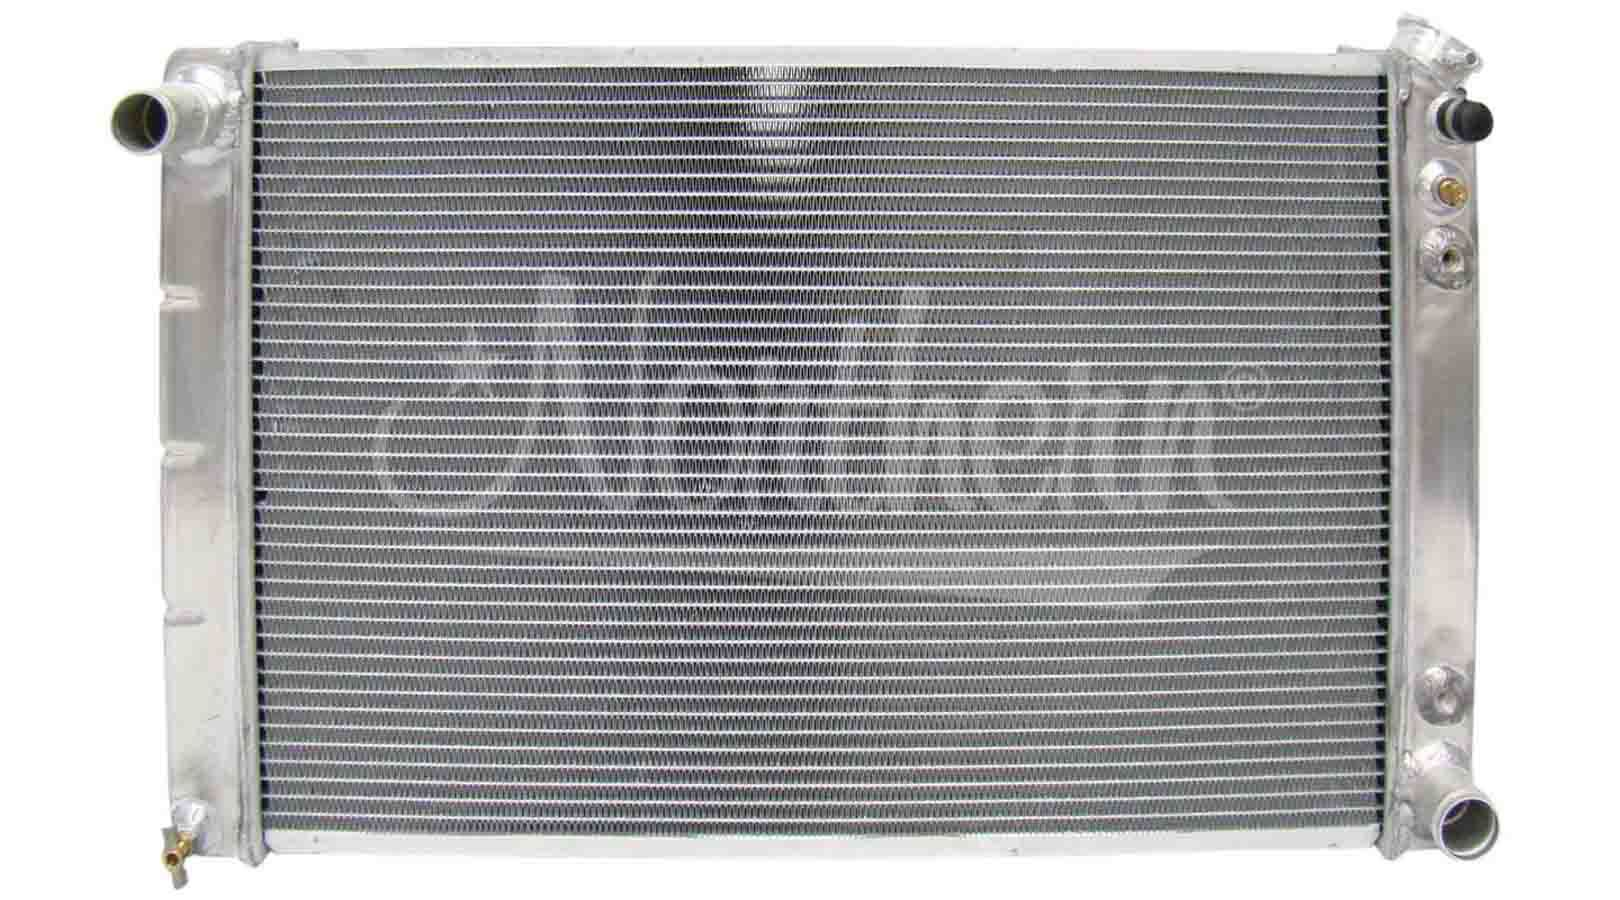 Northern Radiator 205027 Radiator, 30-5/8 in W x 18-5/8 in H x 3-1/8 in D, Passenger Side Inlet, Driver Side Outlet, Aluminum, Natural, Automatic, GM 1965-90, Each